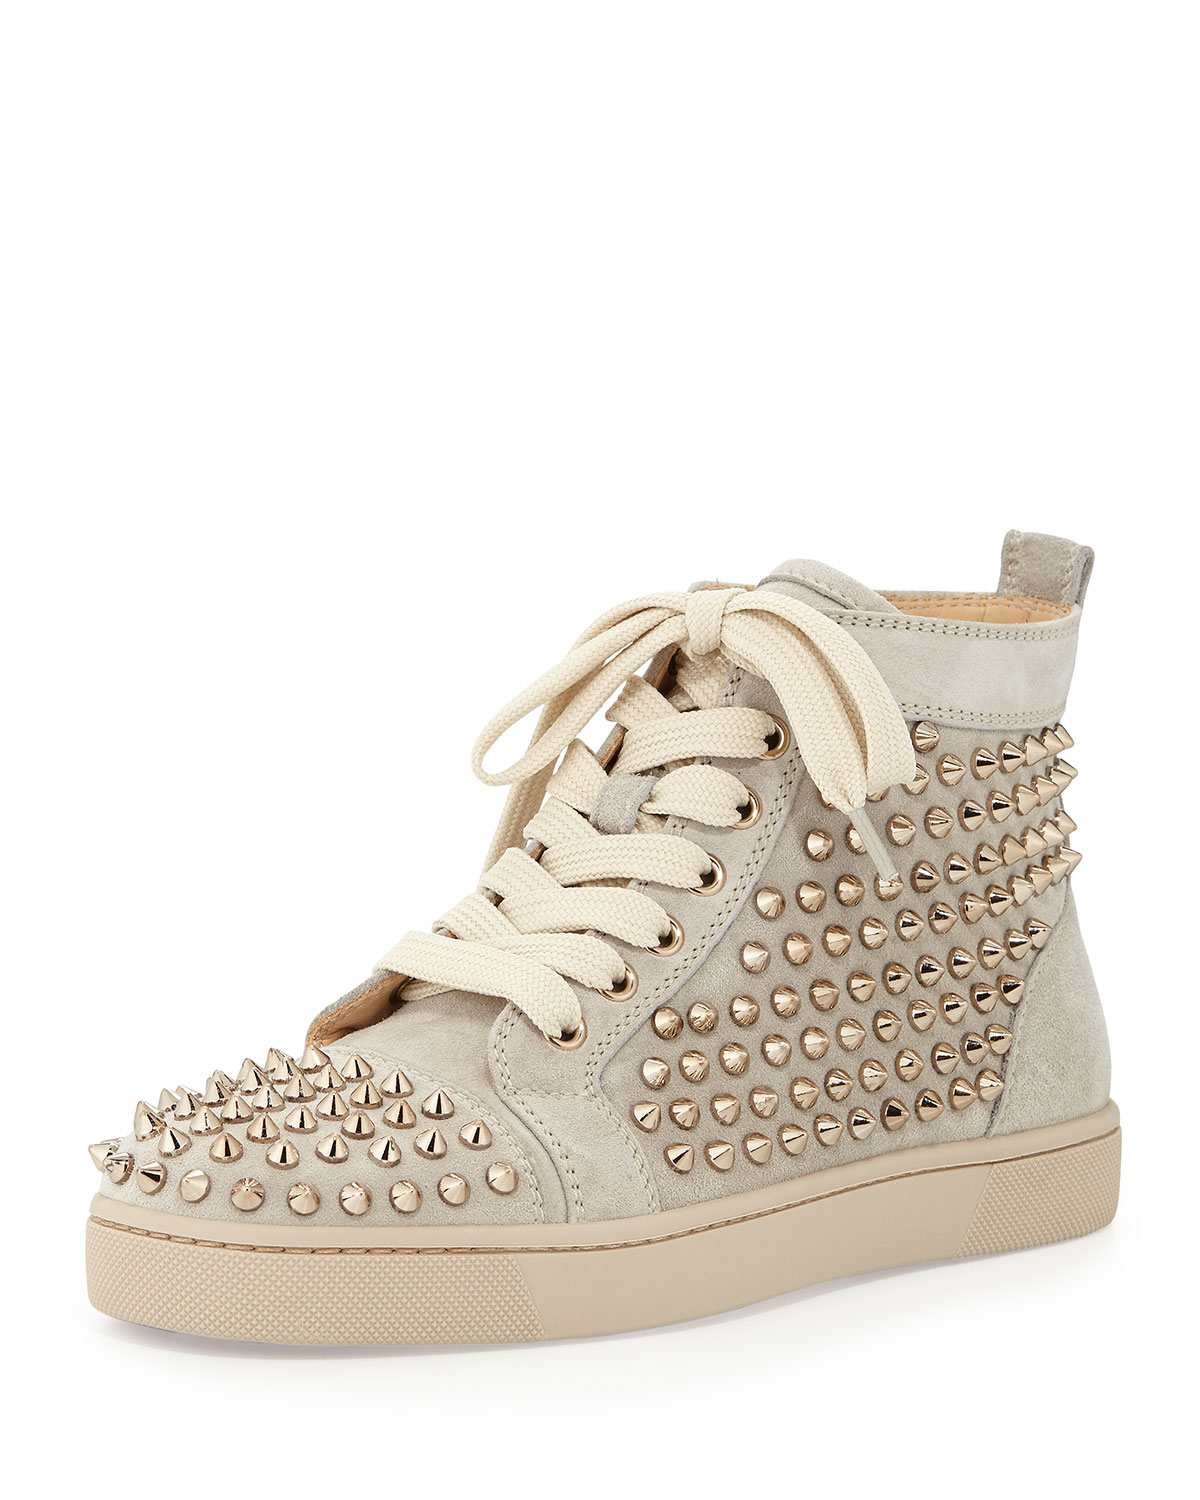 6979190d6f65 Lyst - Christian Louboutin Louis Spiked Suede Sneaker in Natural